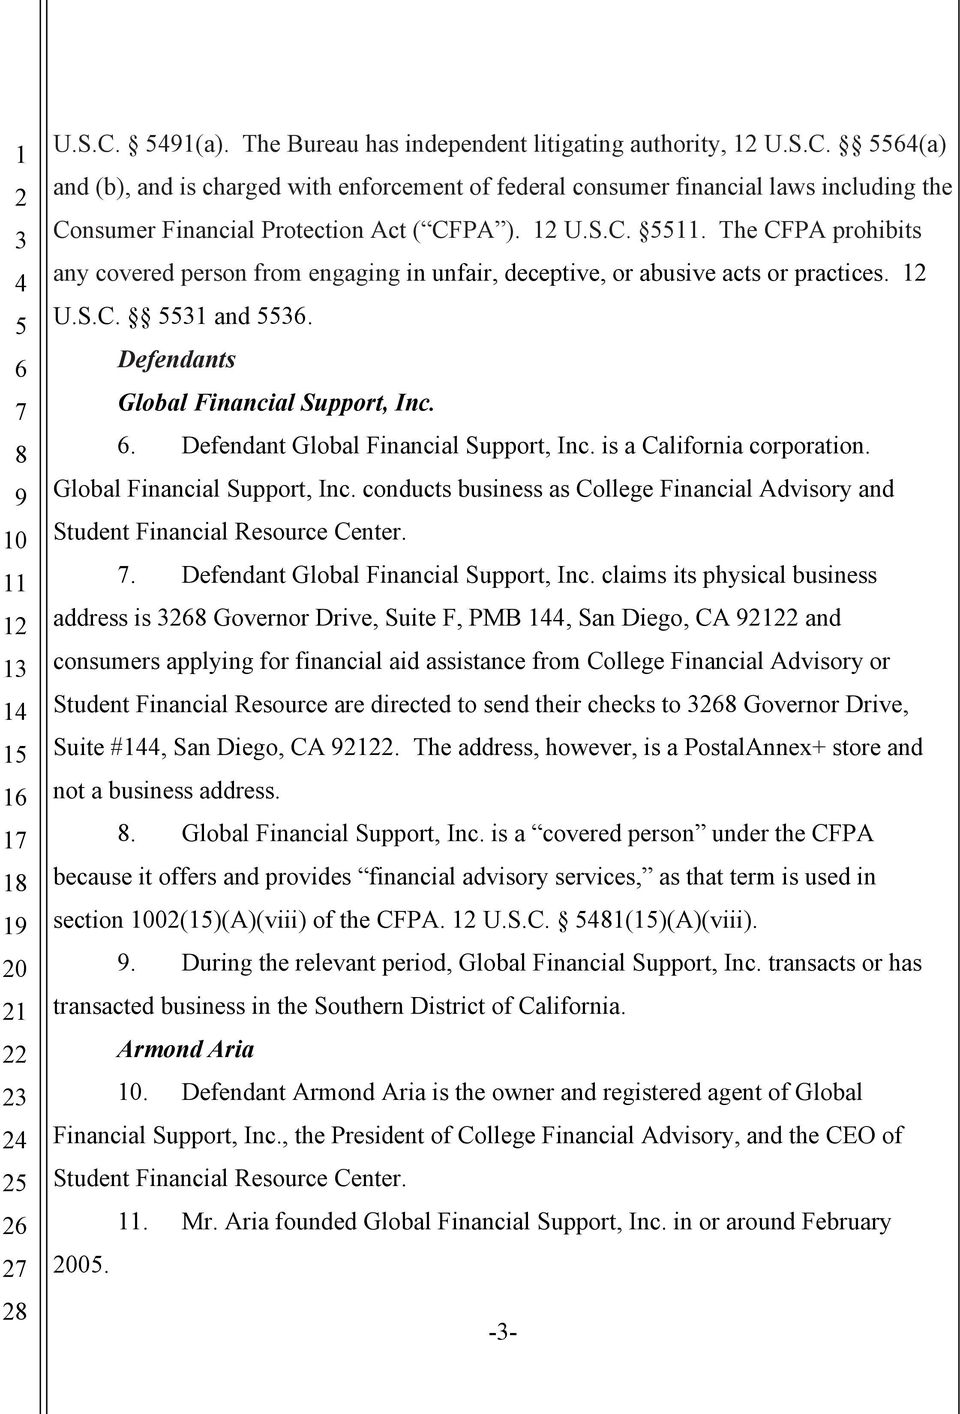 . Defendant Global Financial Support, Inc. is a California corporation. Global Financial Support, Inc. conducts business as College Financial Advisory and Student Financial Resource Center.